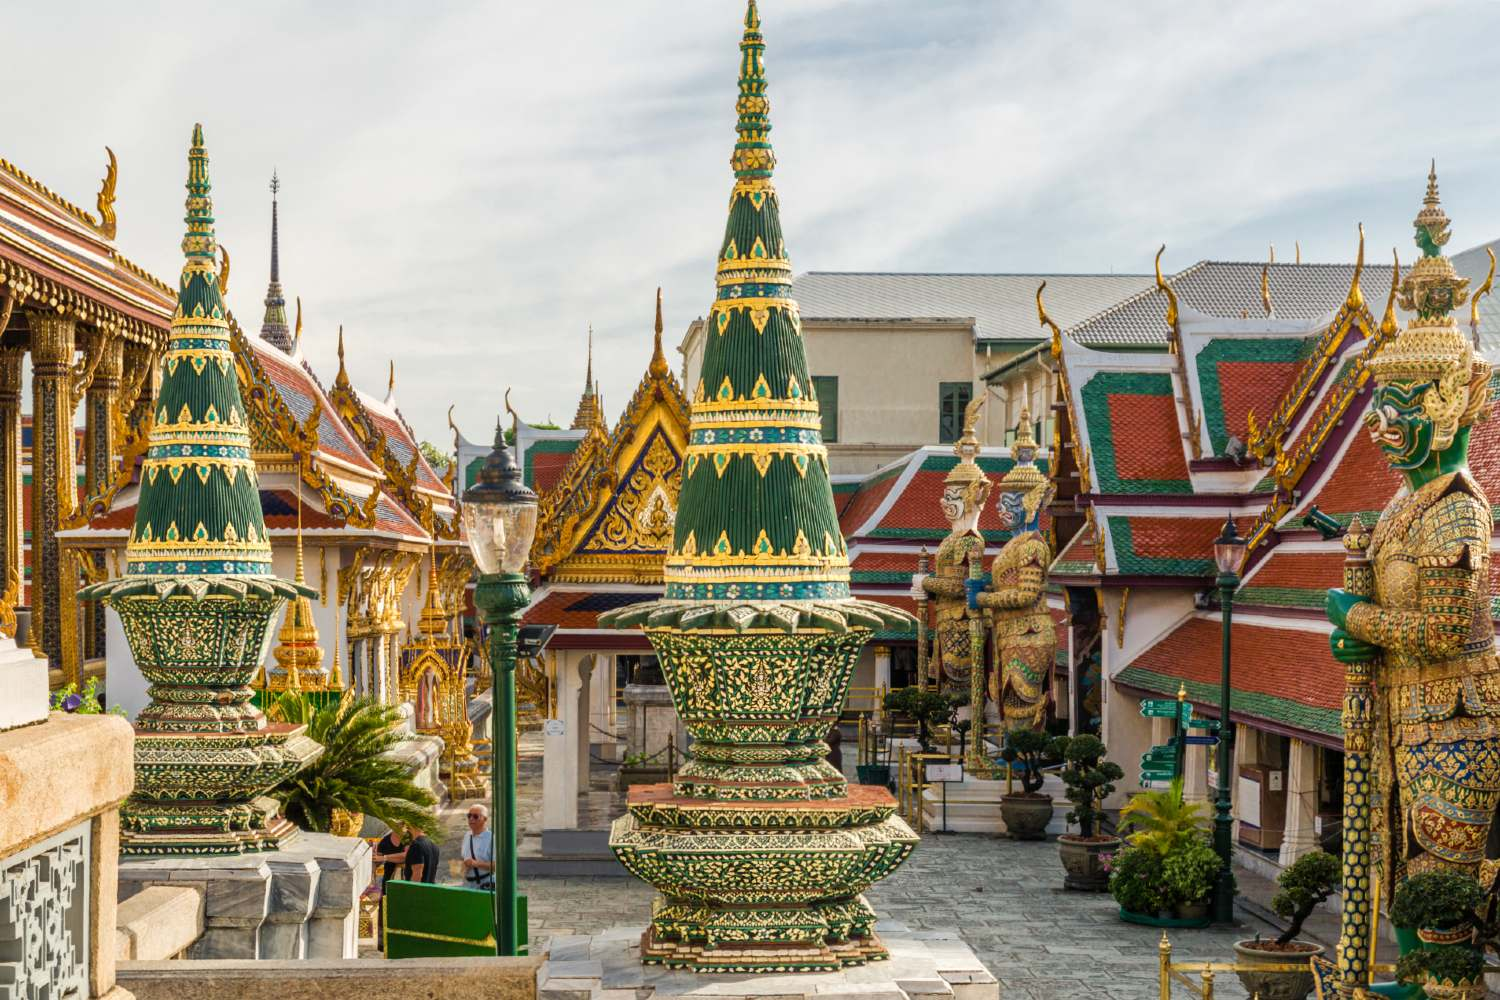 The grounds of the Grand Palace in Bangkok, Thailand